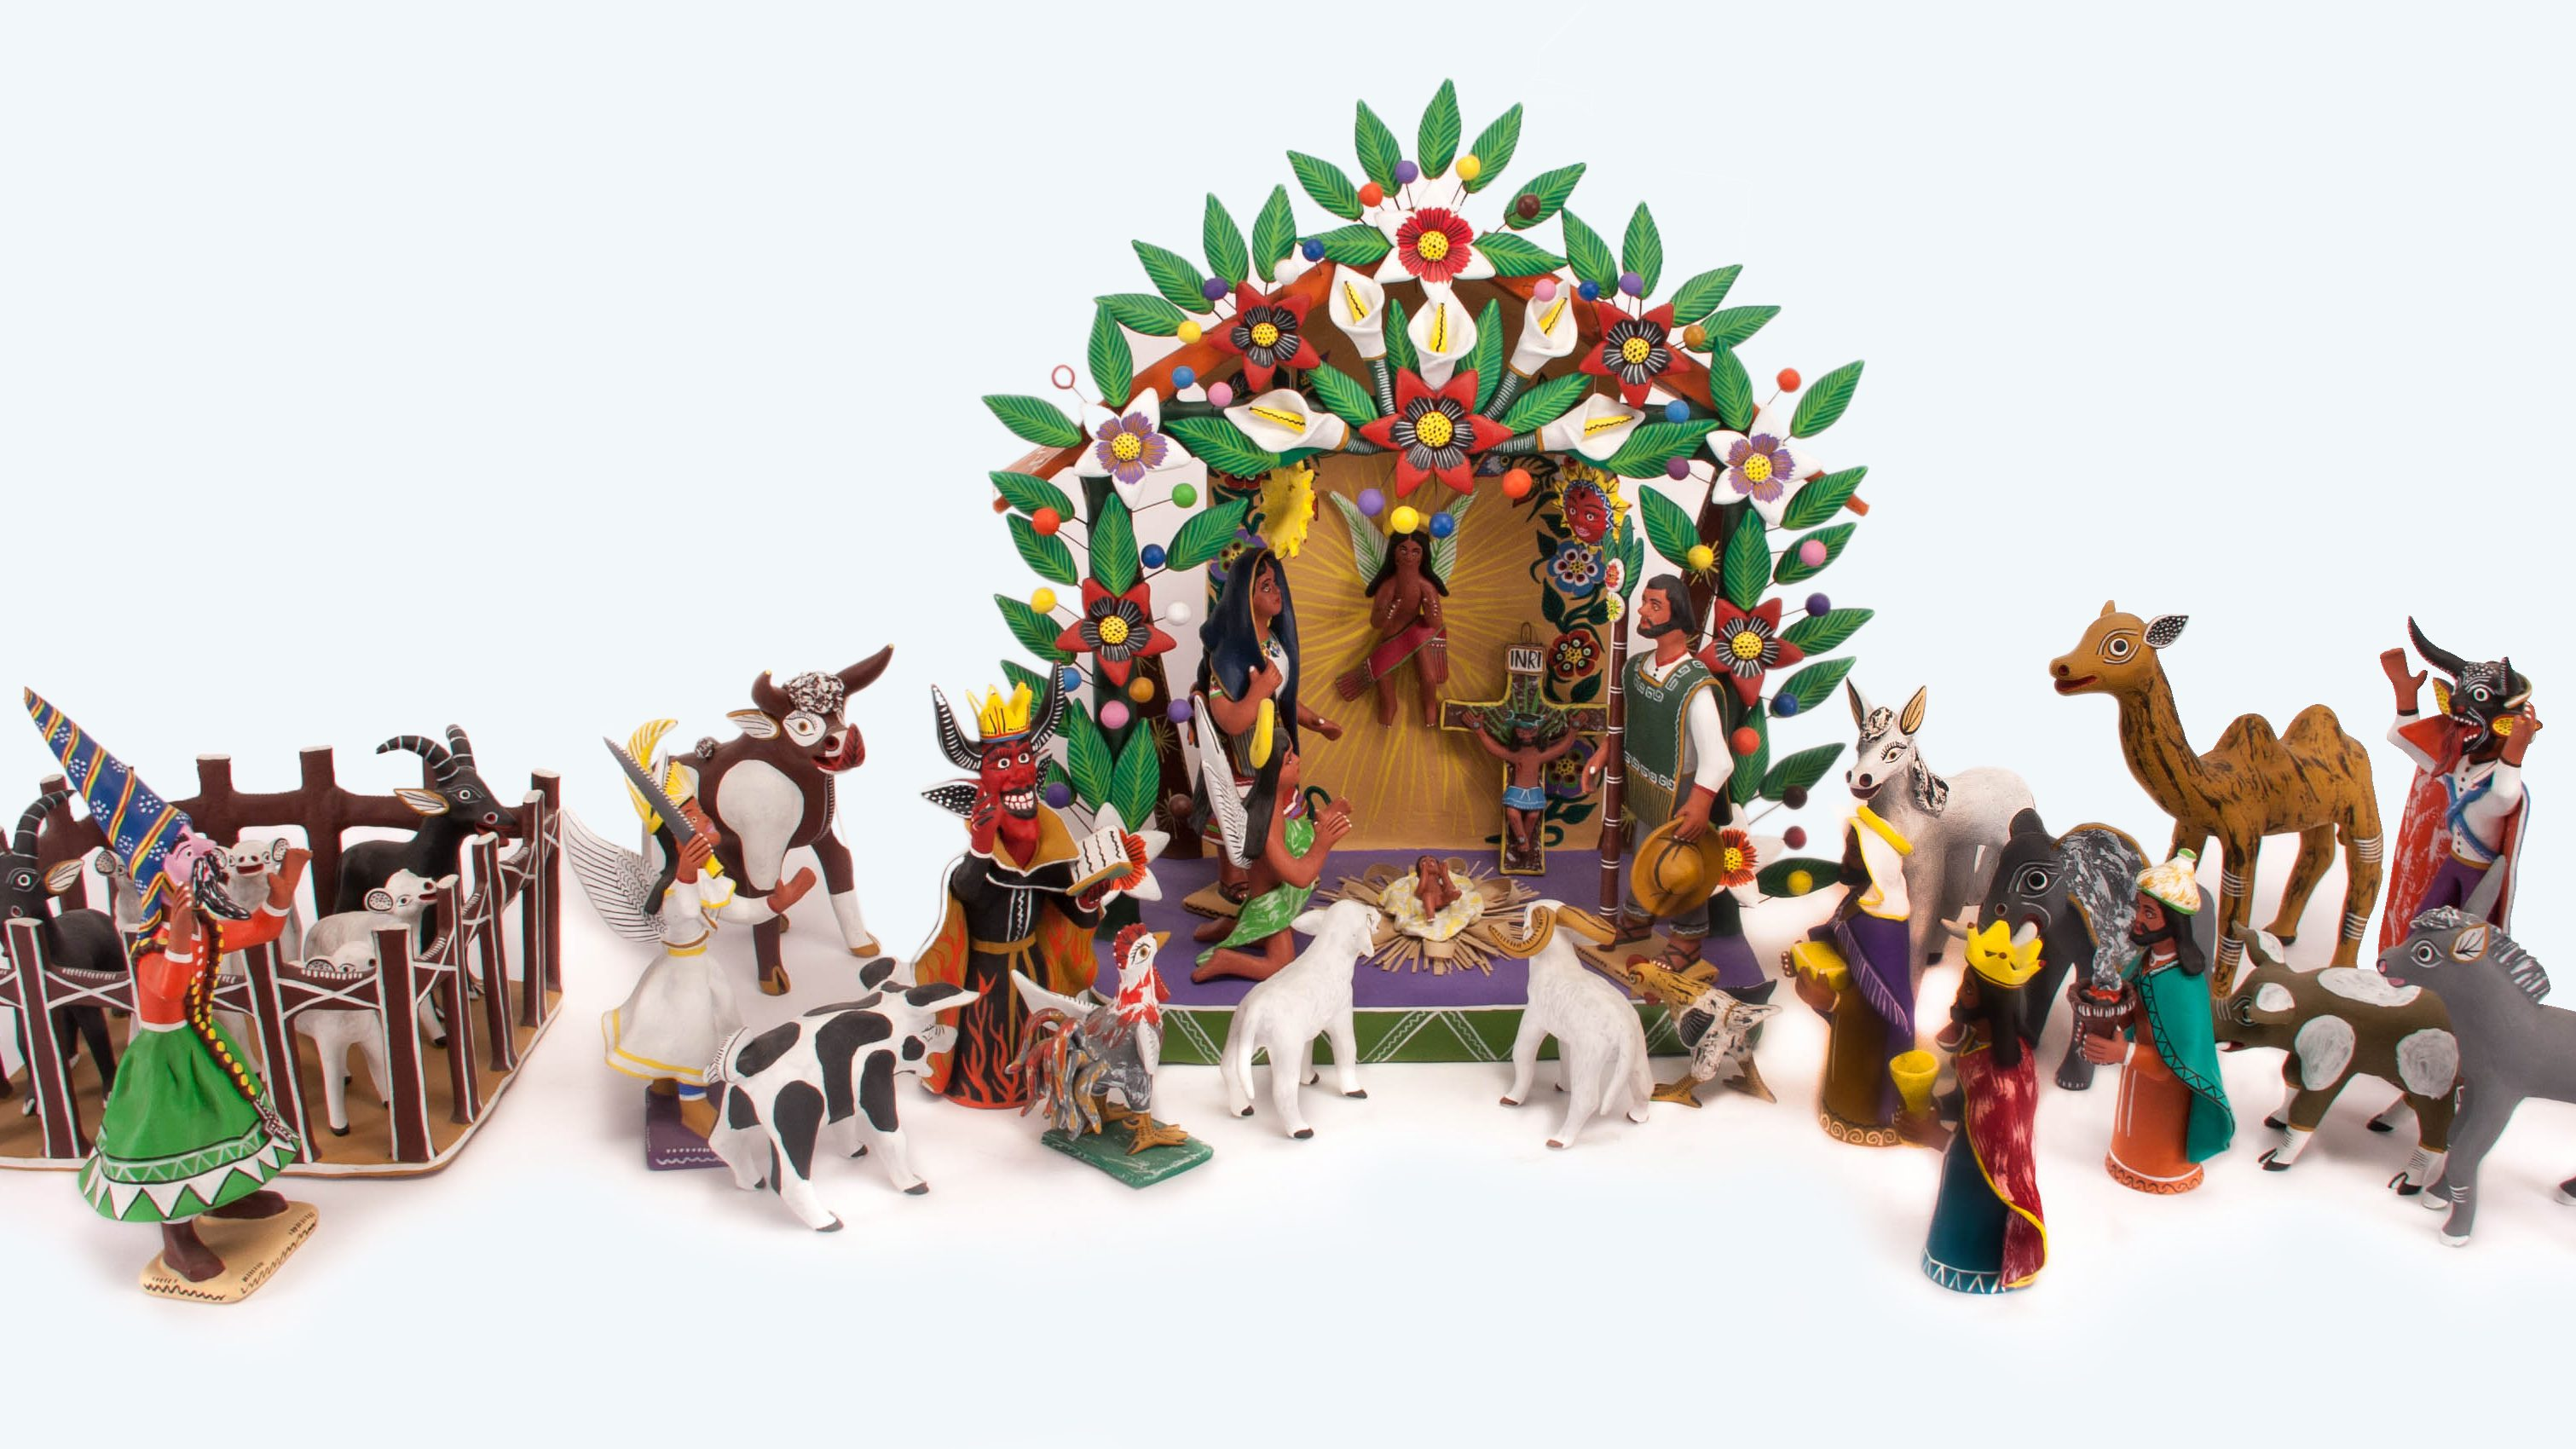 Mexicos Nativity Scenes Are An Exuberant And Fantastical Christmas